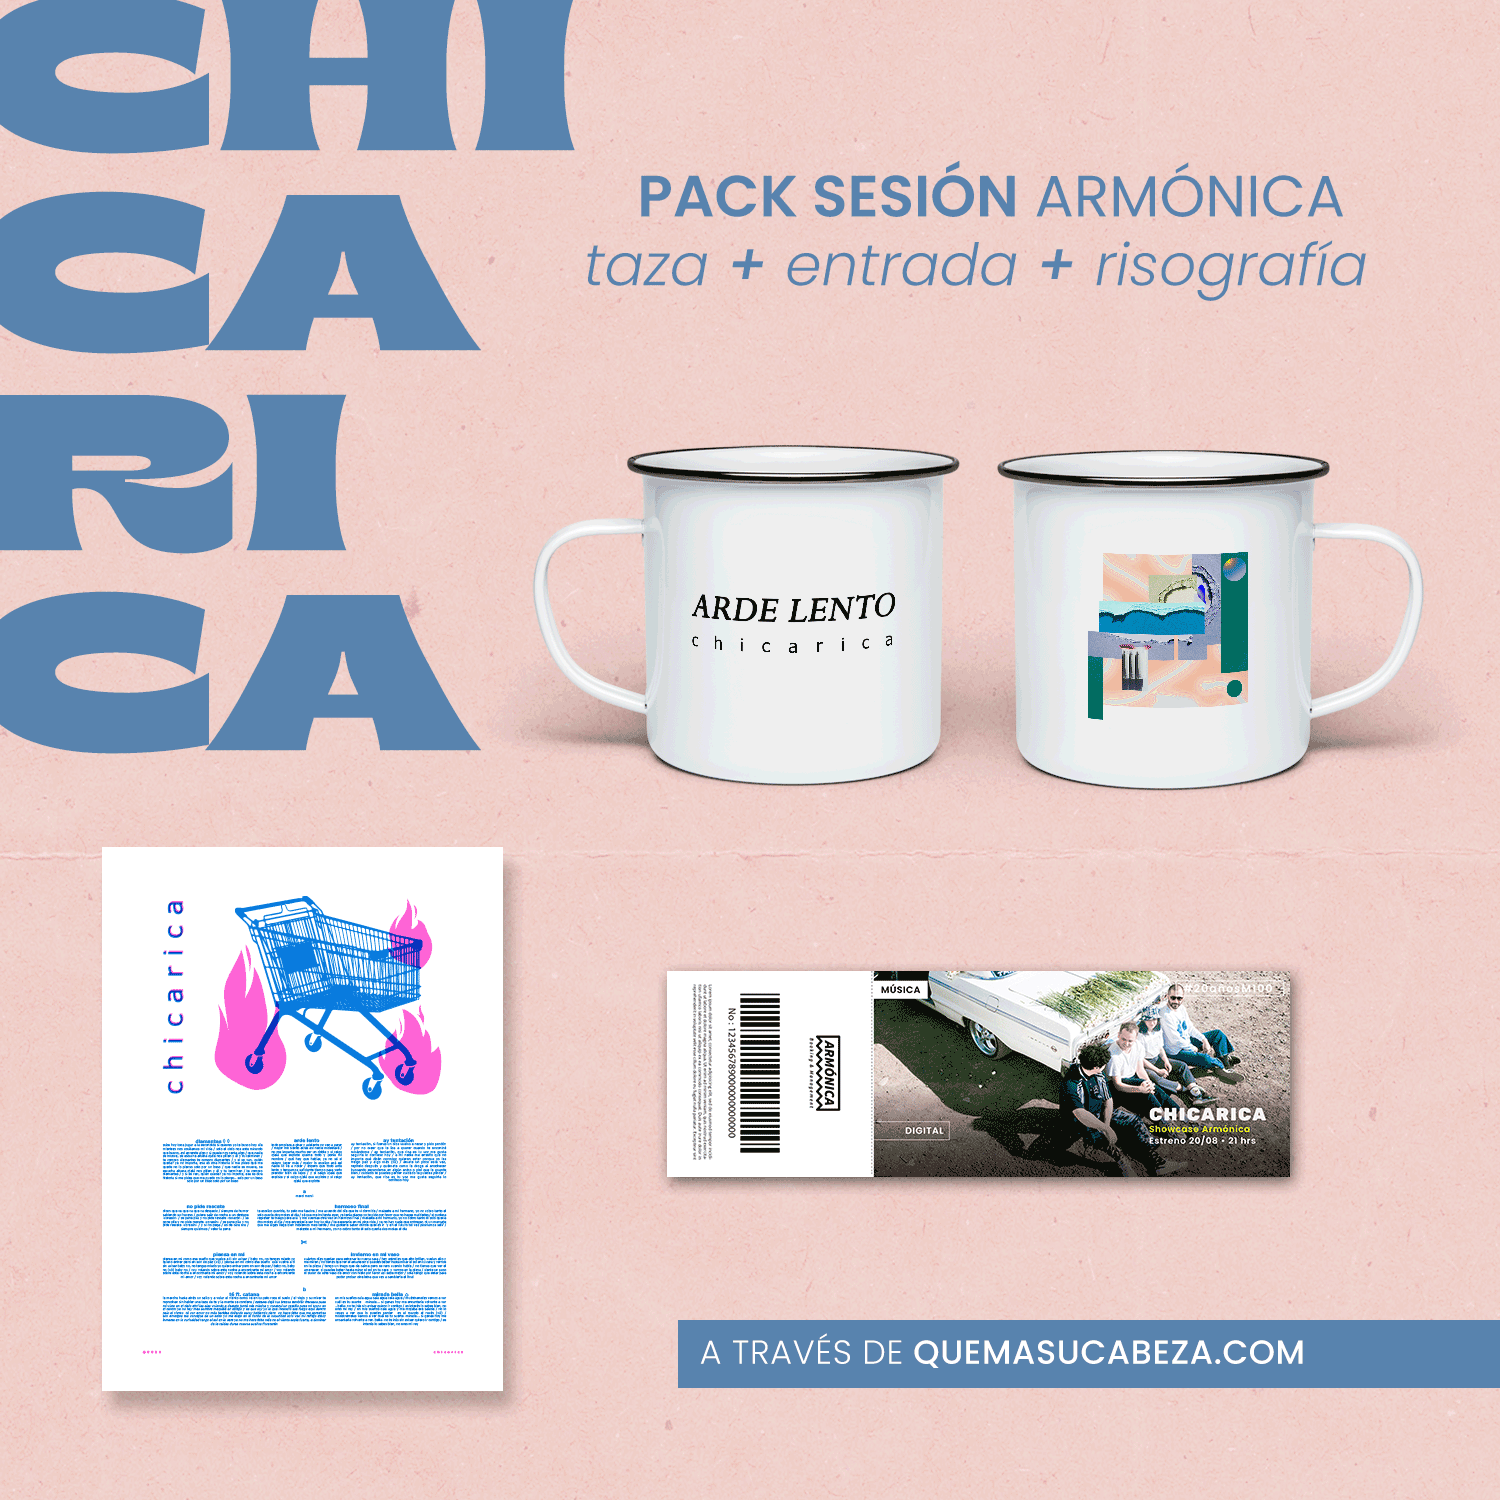 Pack Sesiones Armónica: Chicarica